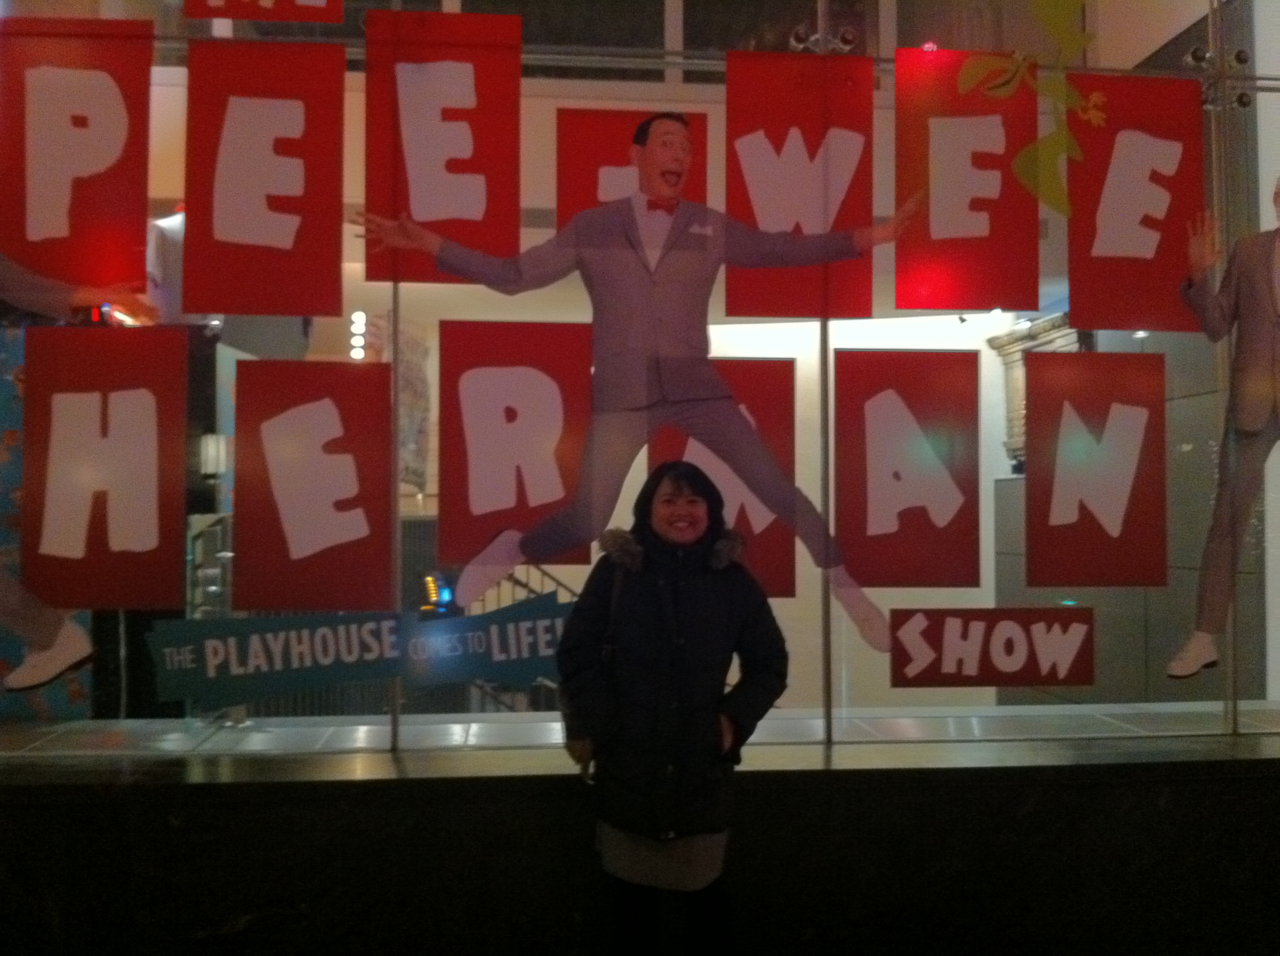 Going to see Pee-Wee Herman at the Stephen Sondheim Theatre.